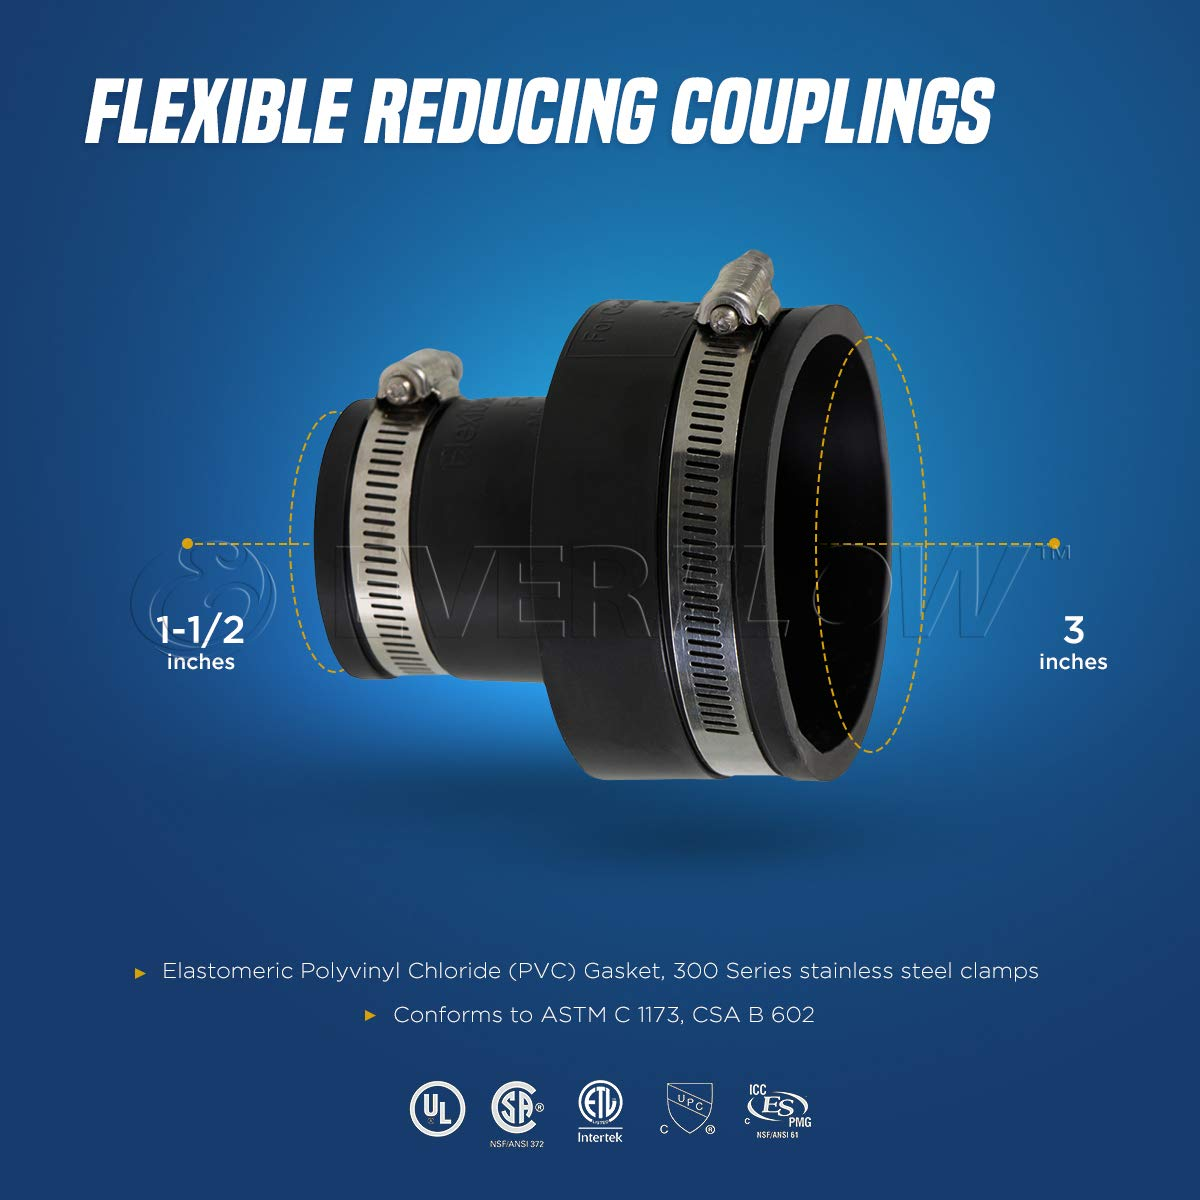 2 x 1-1//2 Inch EVERCONNECT 4831 Flexible Pvc Reducing Rubber Coupling with Stainless Steel Clamps Black